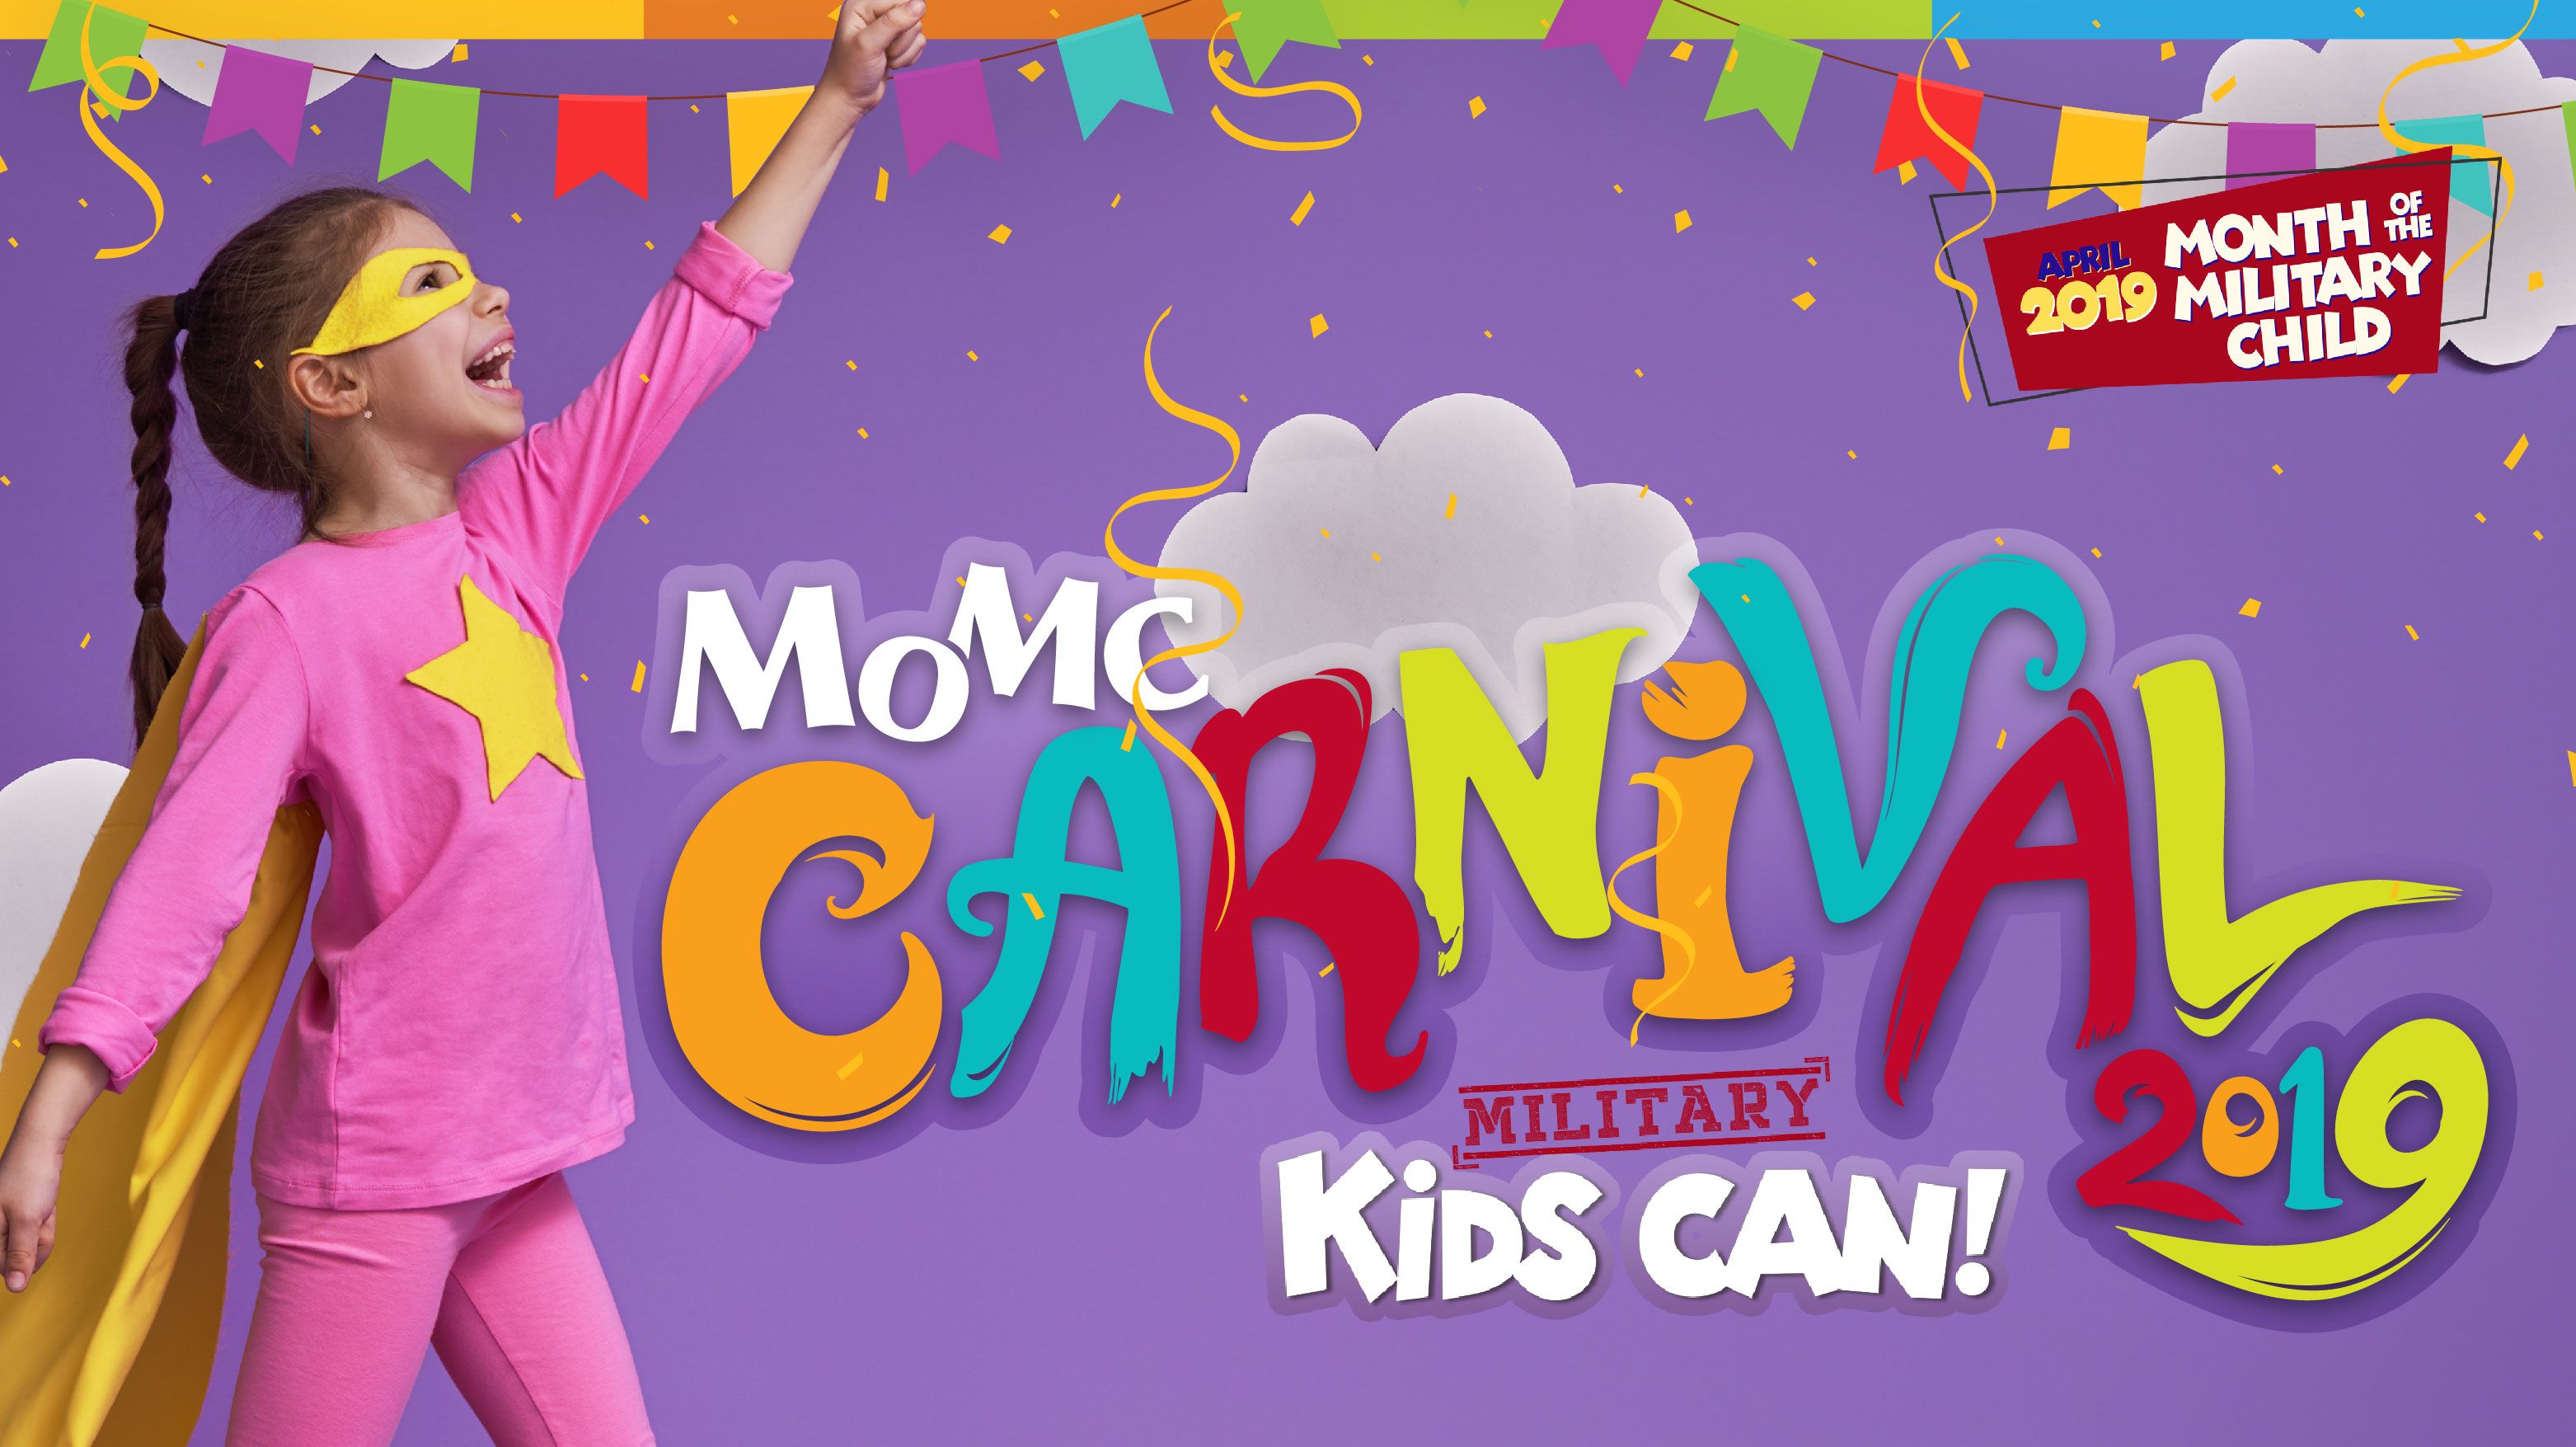 Month of the Military Child Carnival